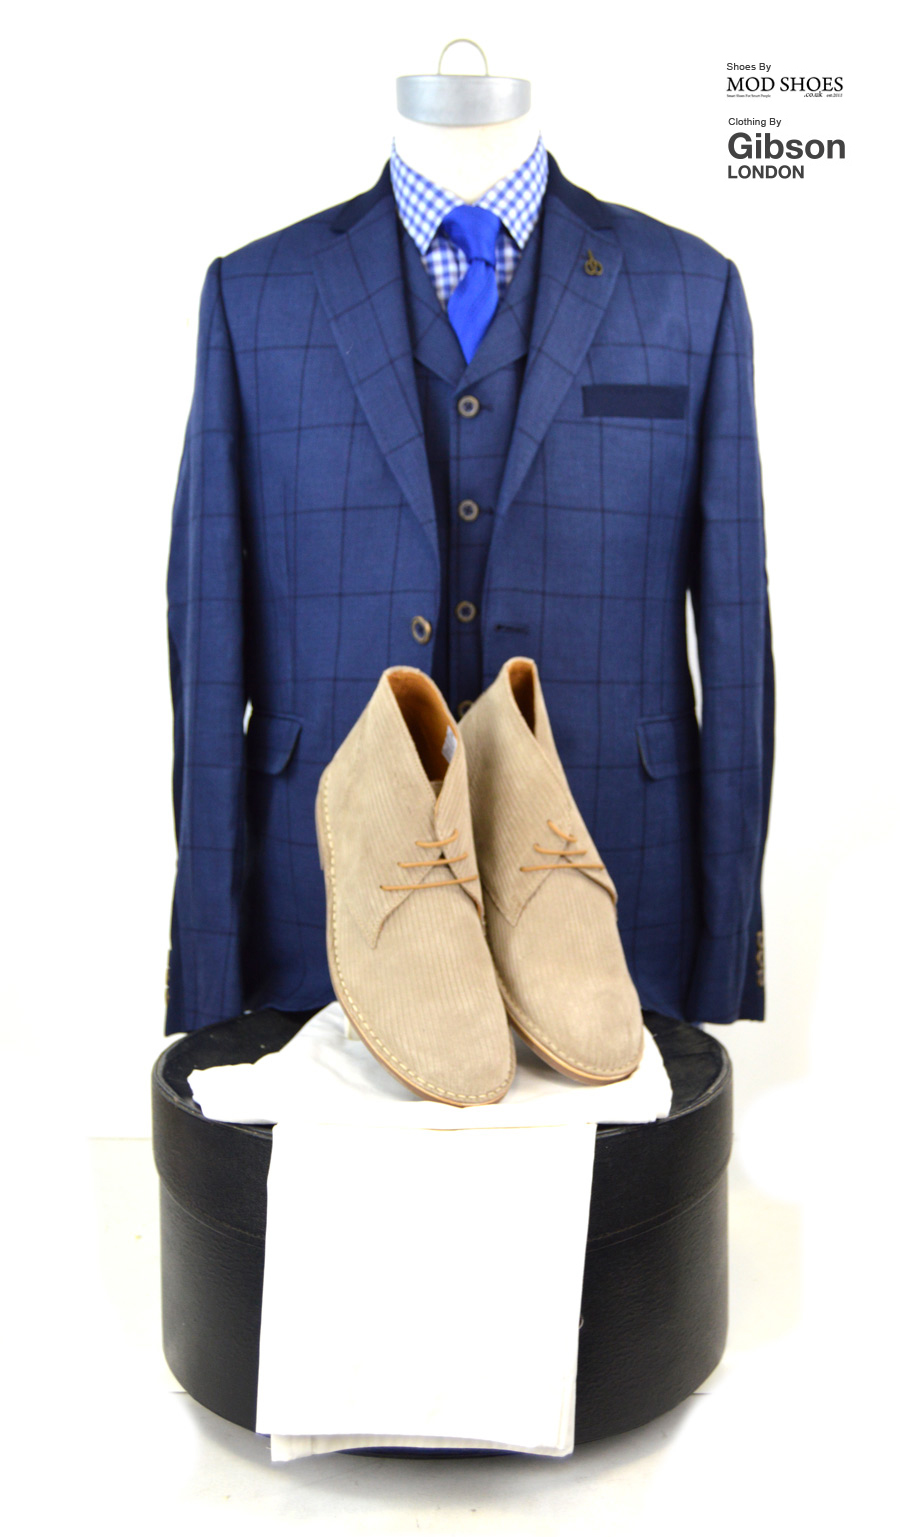 modshoes-prestons-stone-with-blue-gibson-jacket-01